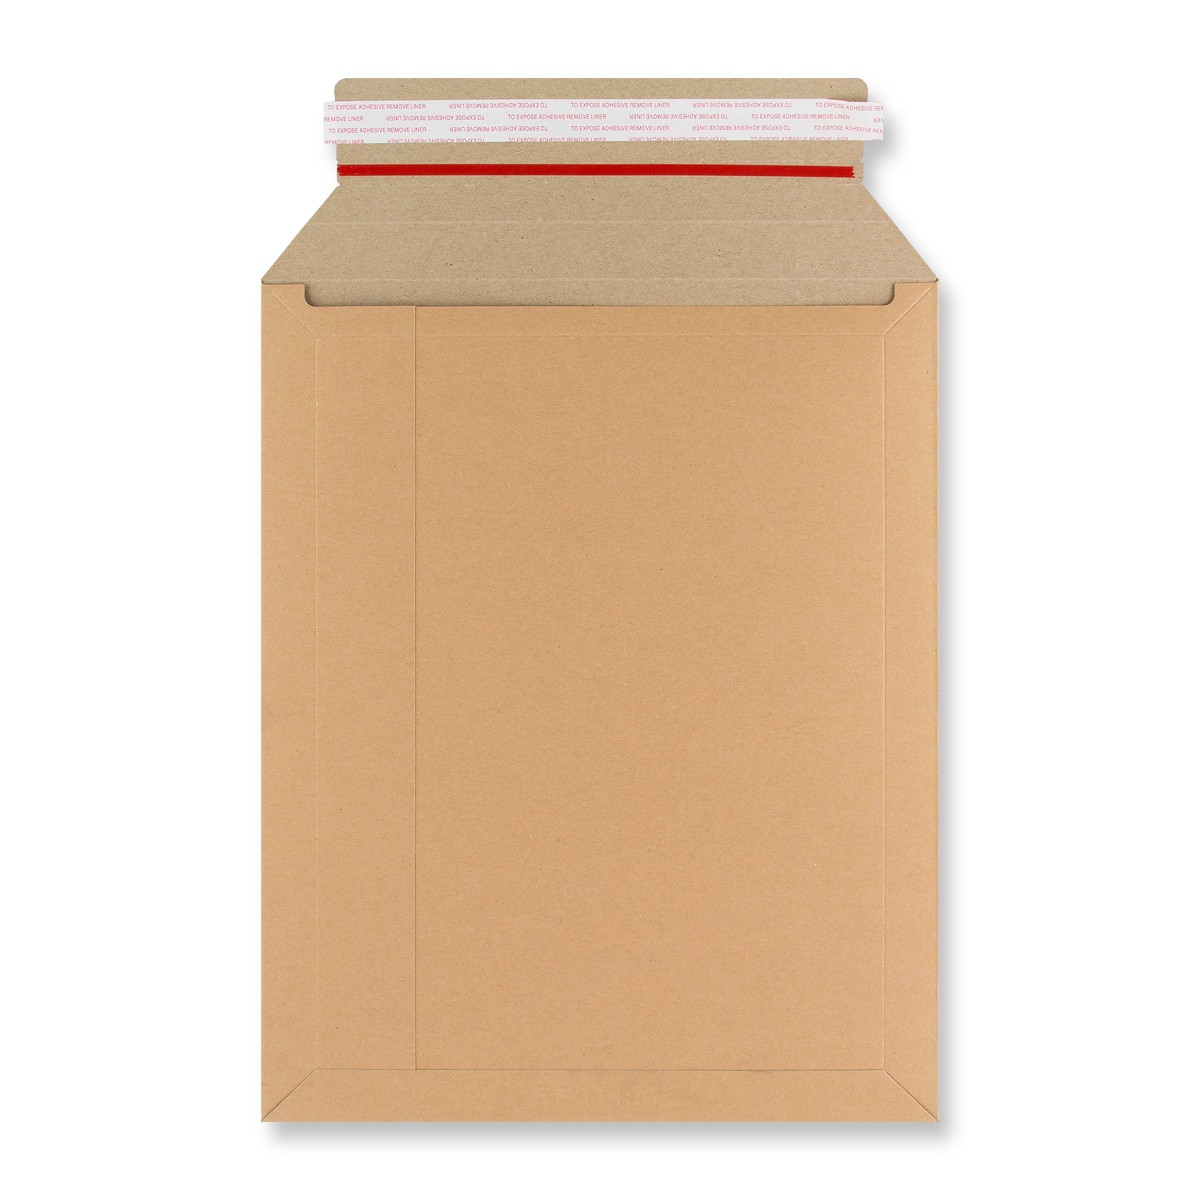 345 x 245mm SOLID MANILLA ALL BOARD MAILER ENVELOPES